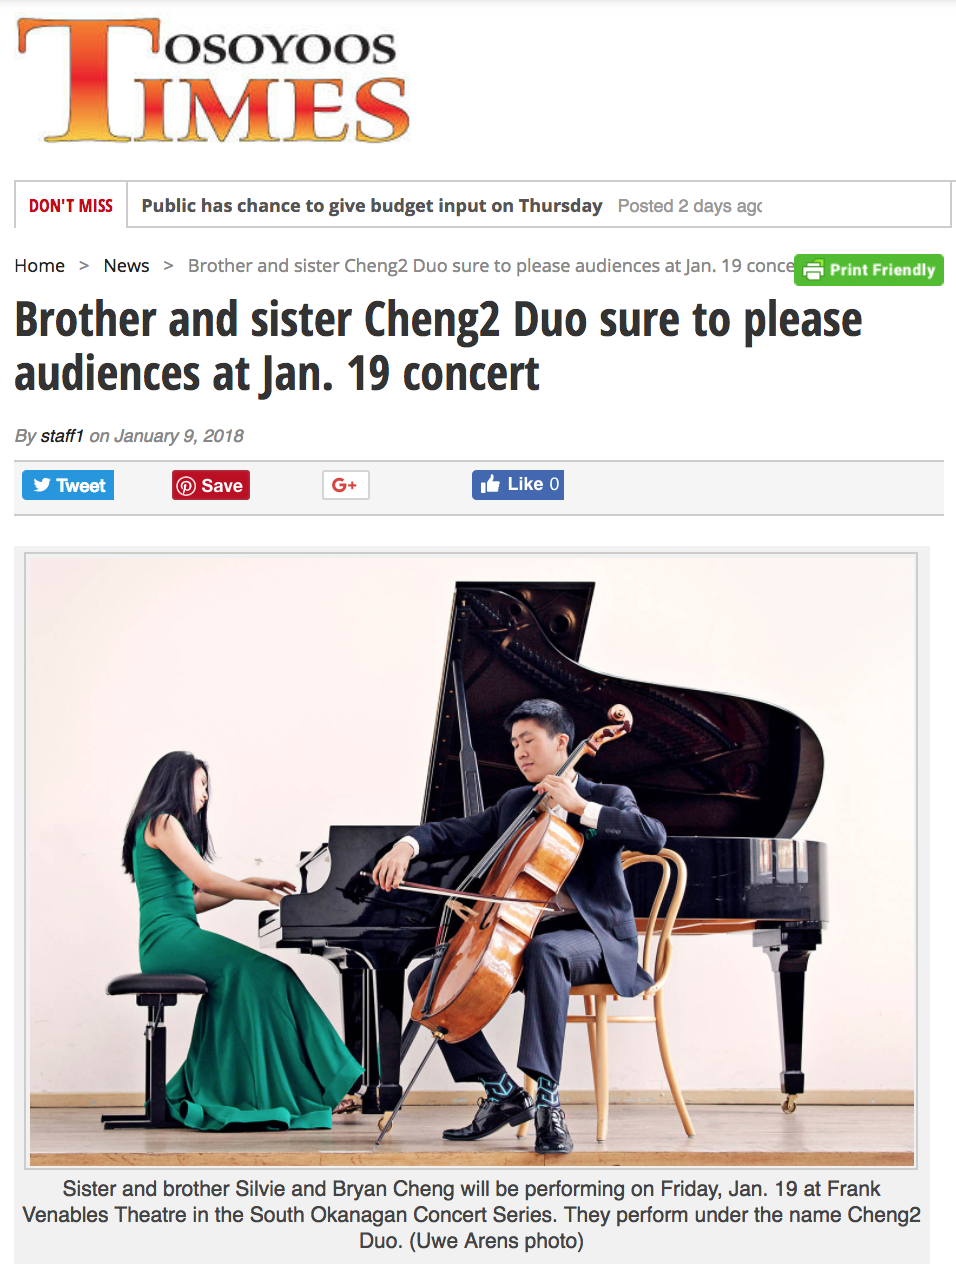 Cheng² Duo sure to please audiences